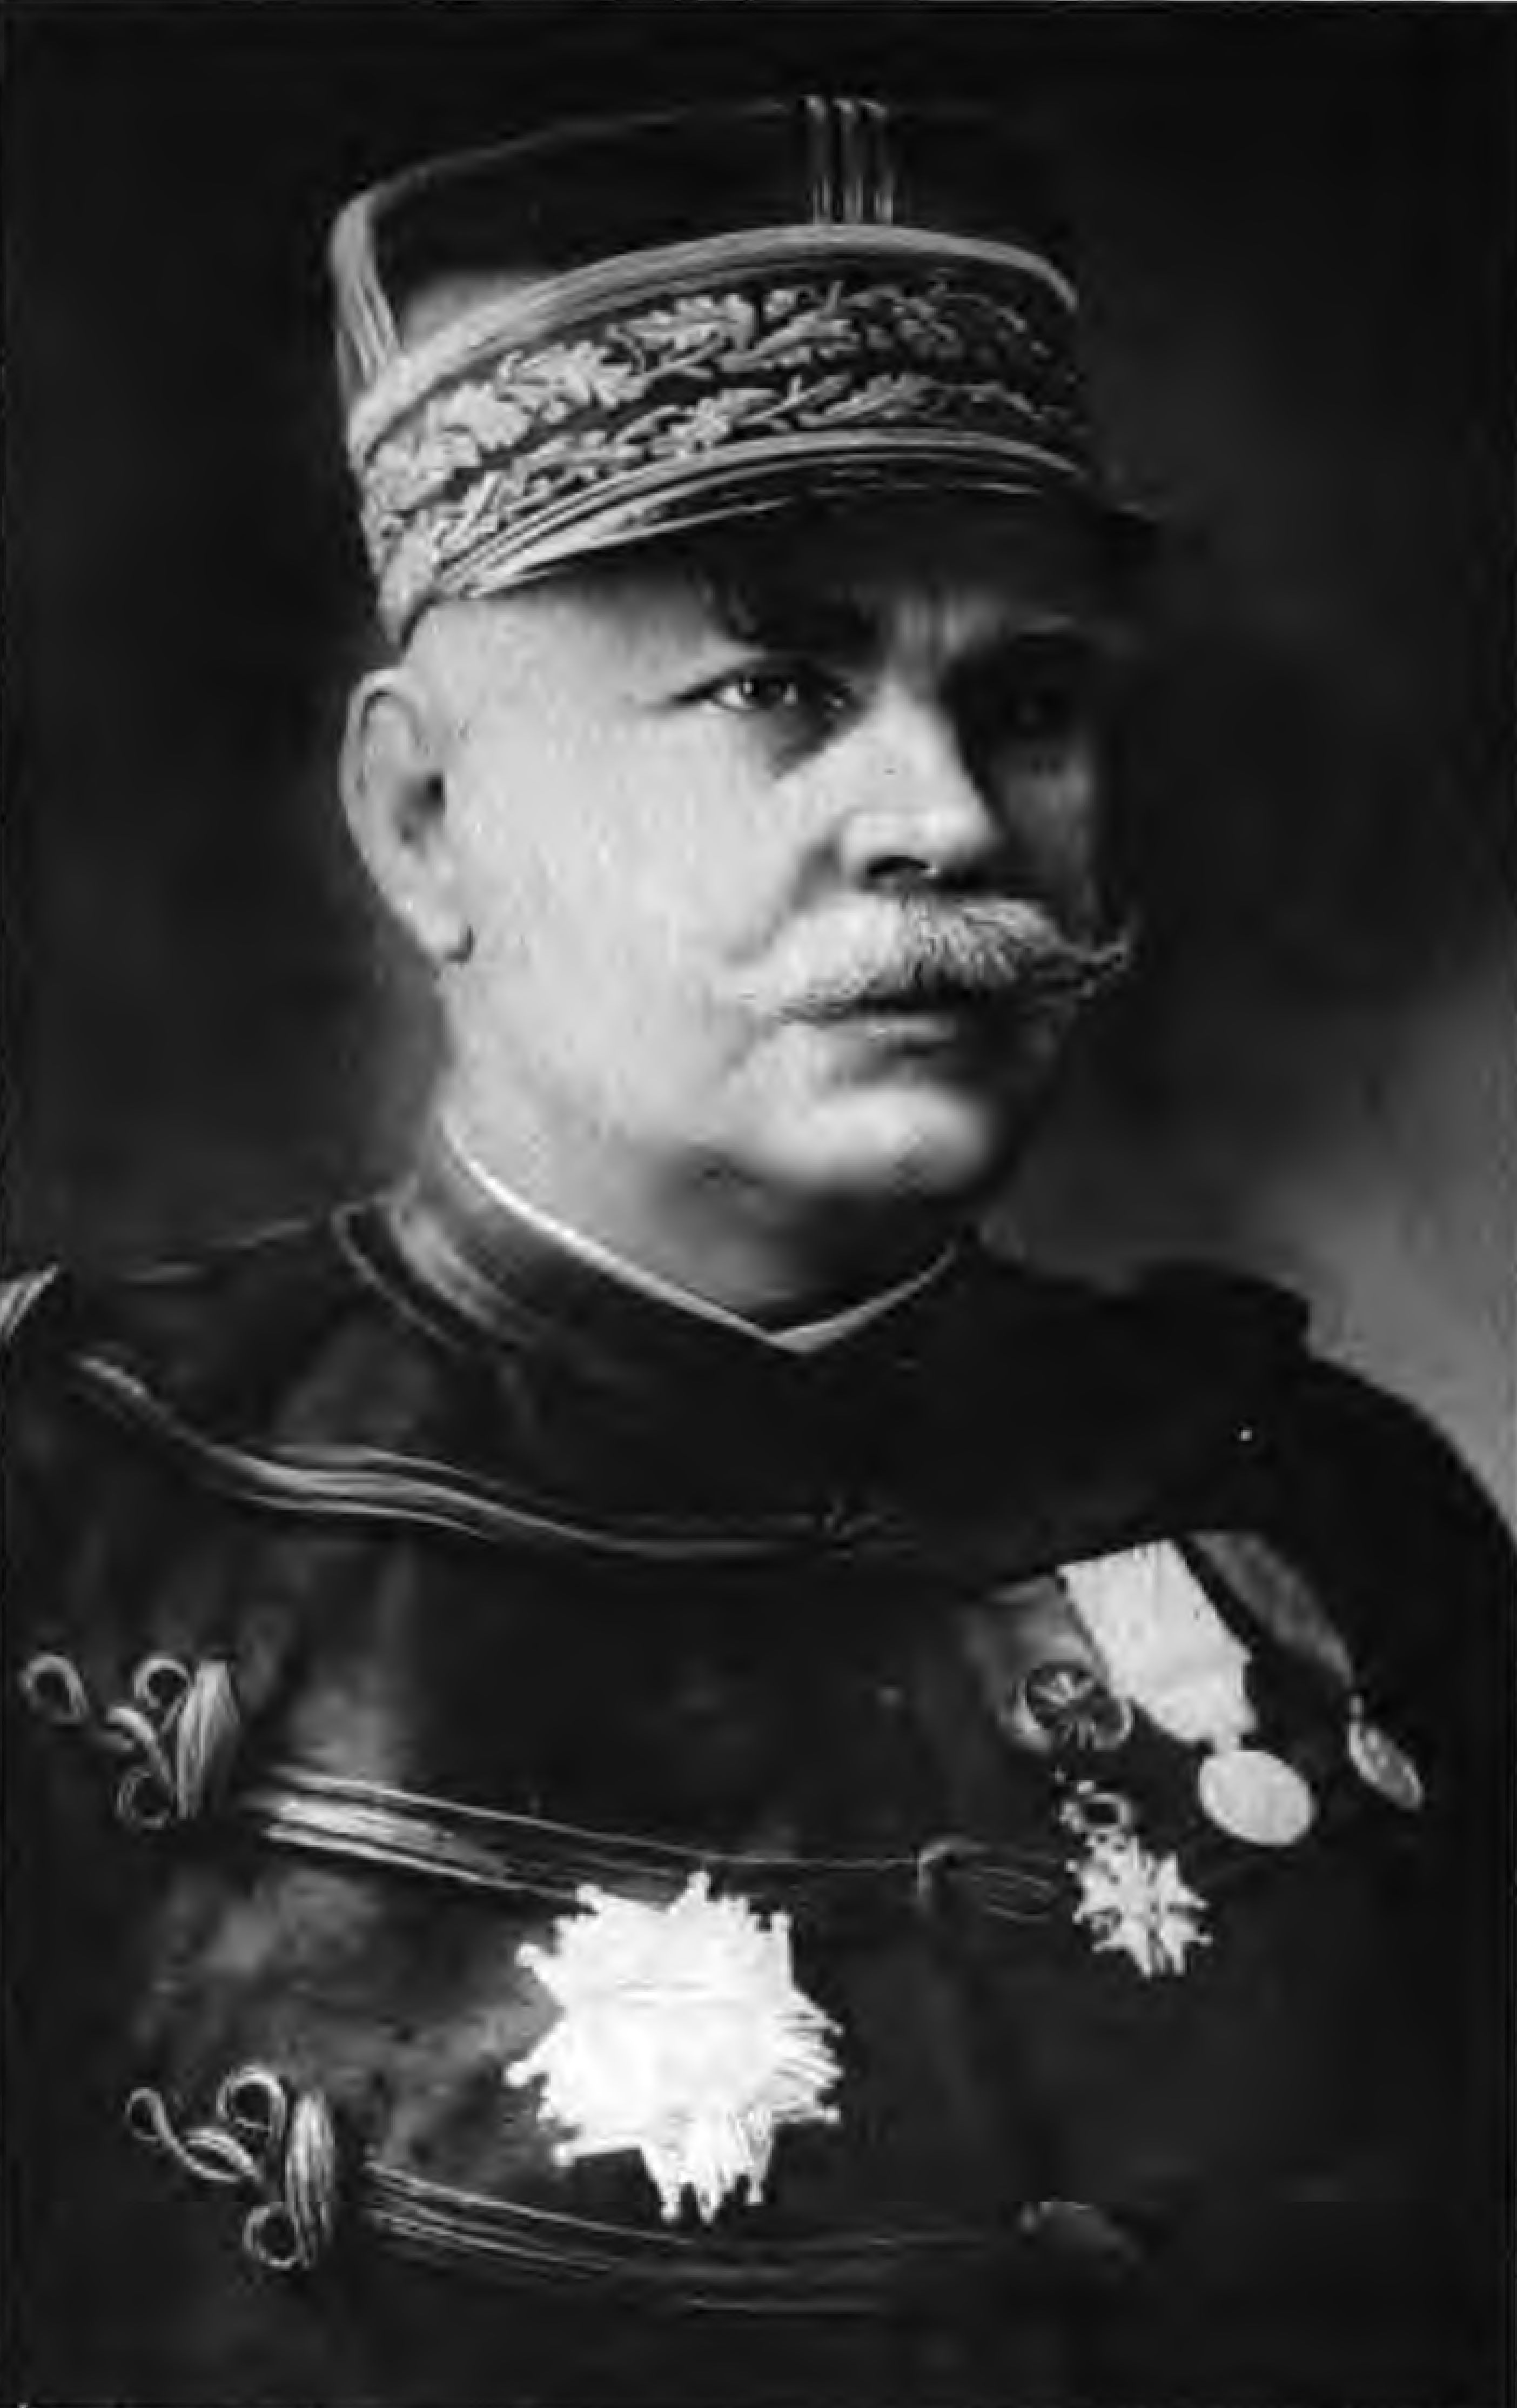 I need to write an essay comparing world war 1 leaders General Haig and Robert Nivelle?